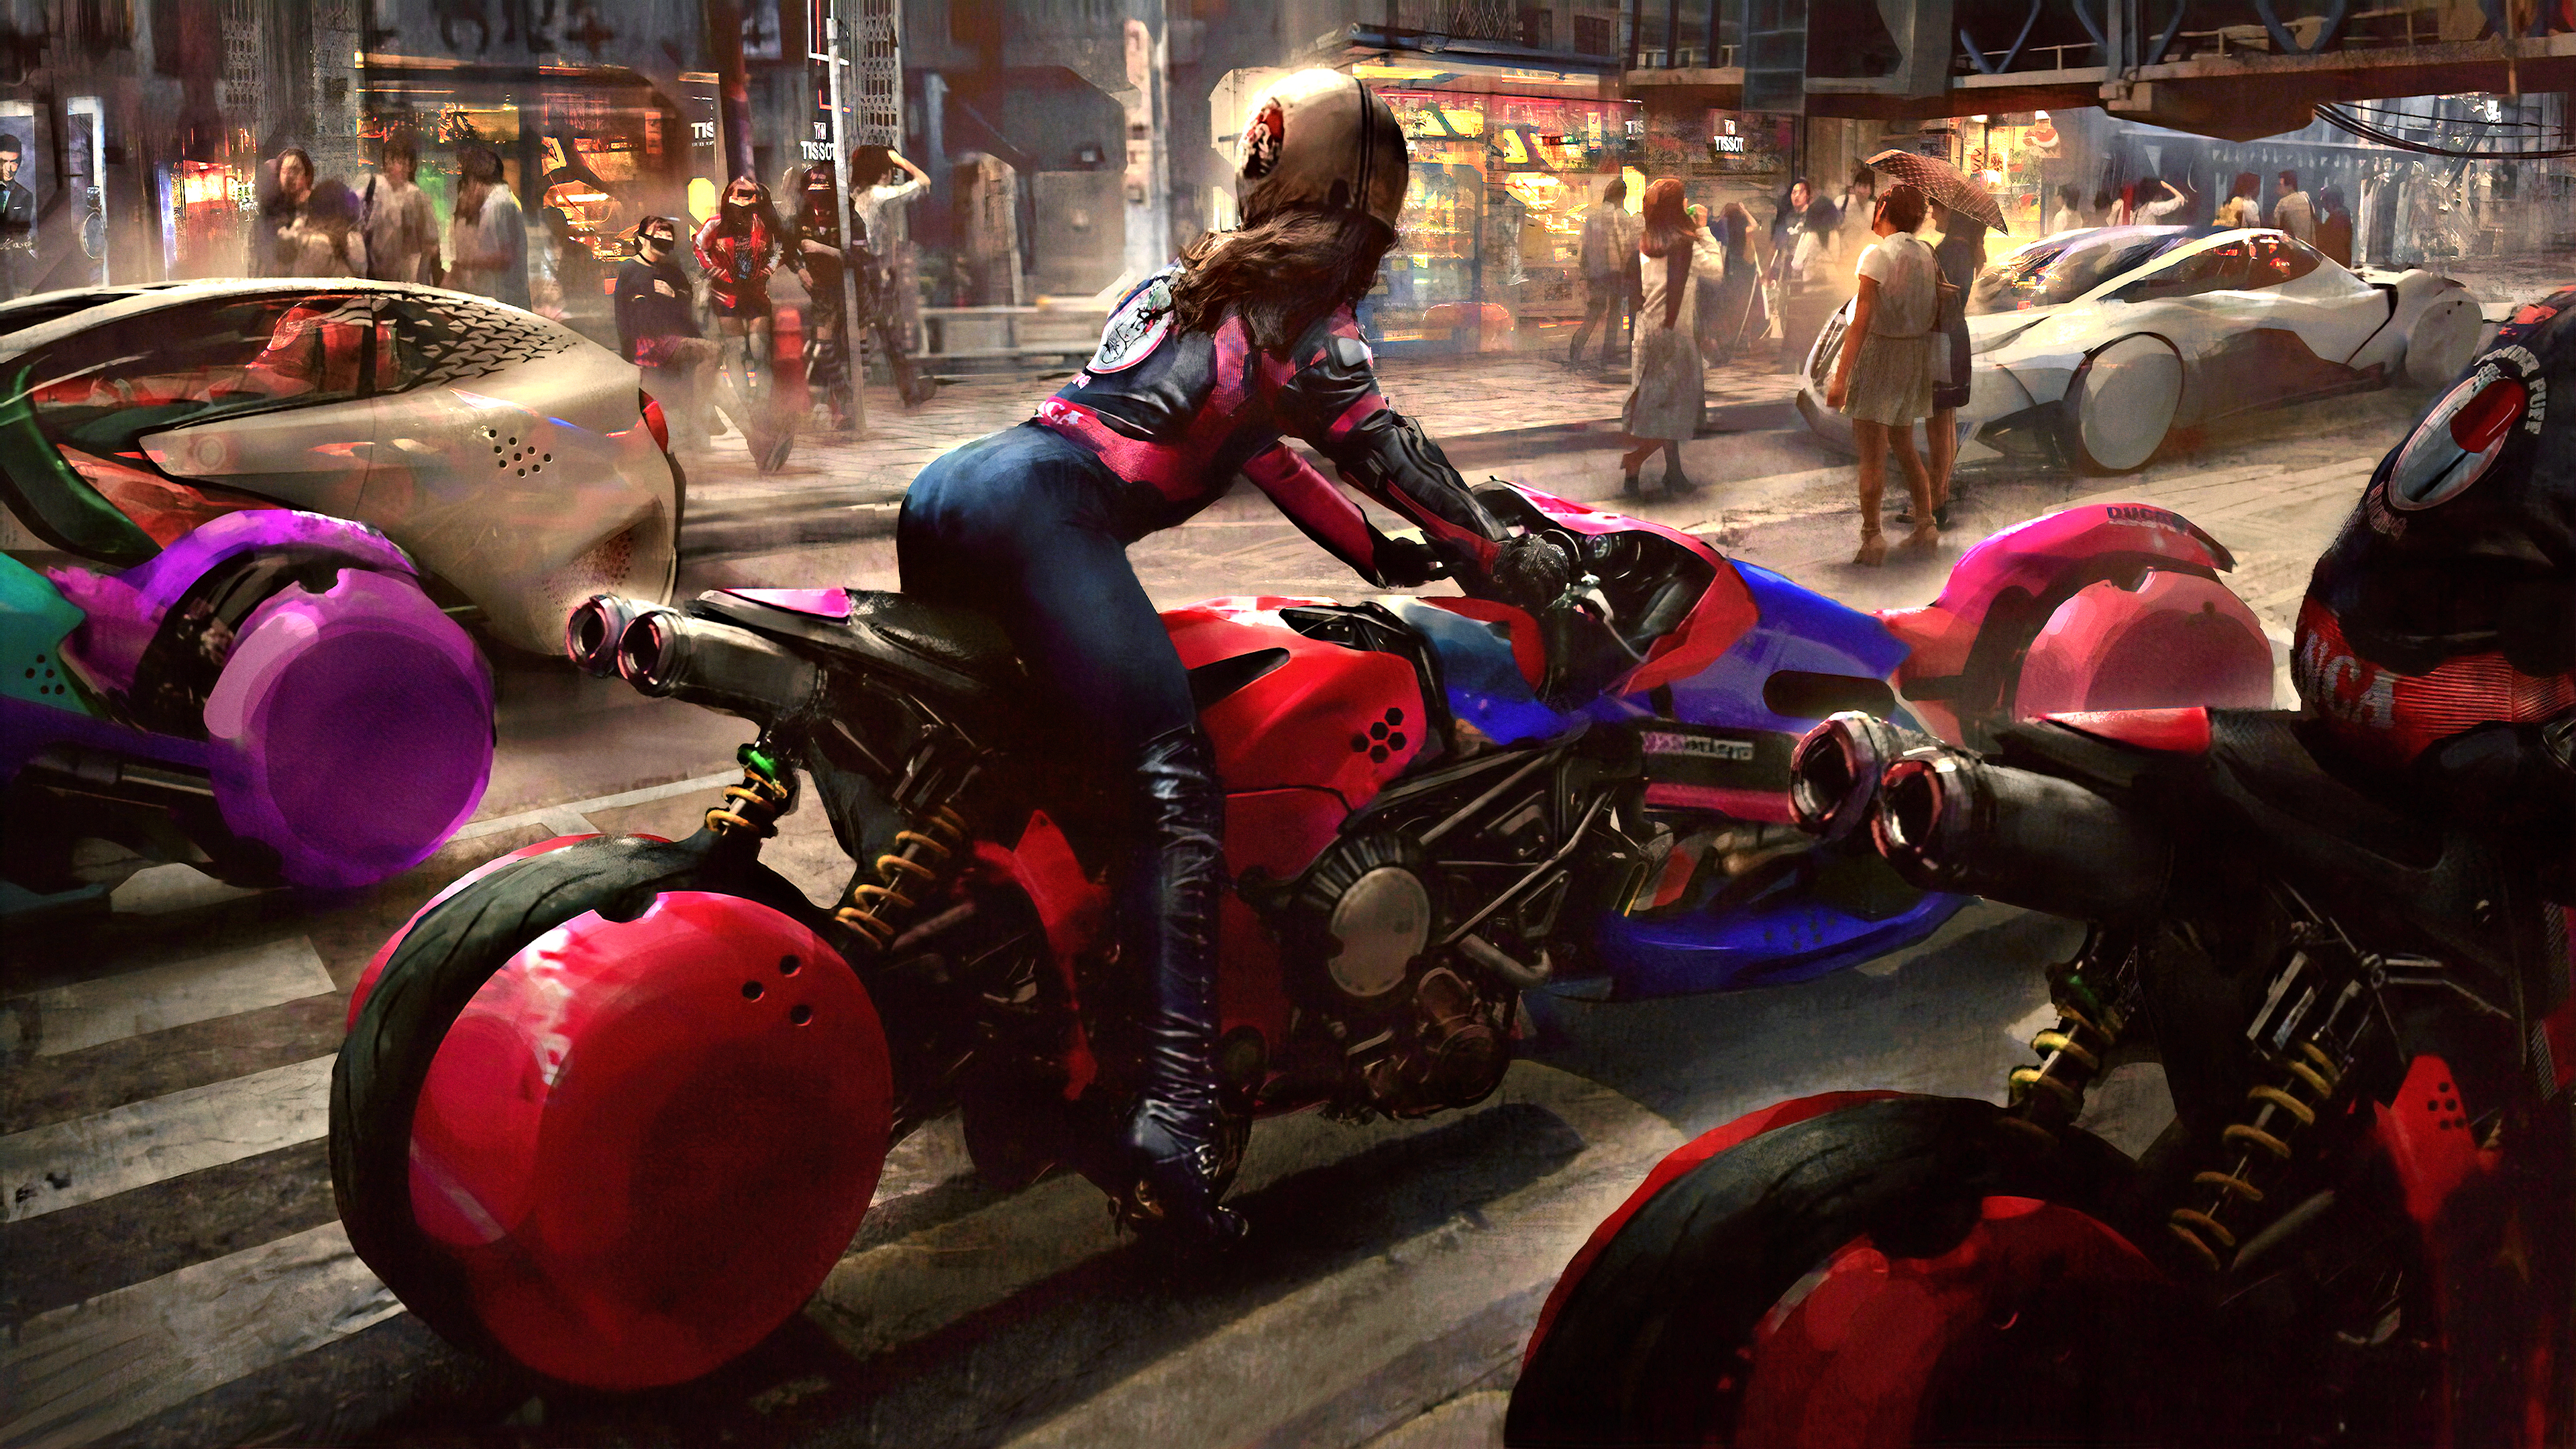 General 3840x2160 science fiction digital art concept art artwork futuristic fantasy art fan art 3D CGI cyberpunk cyber city fantasy girl women cityscape street urban road vehicle Eddie Mendoza